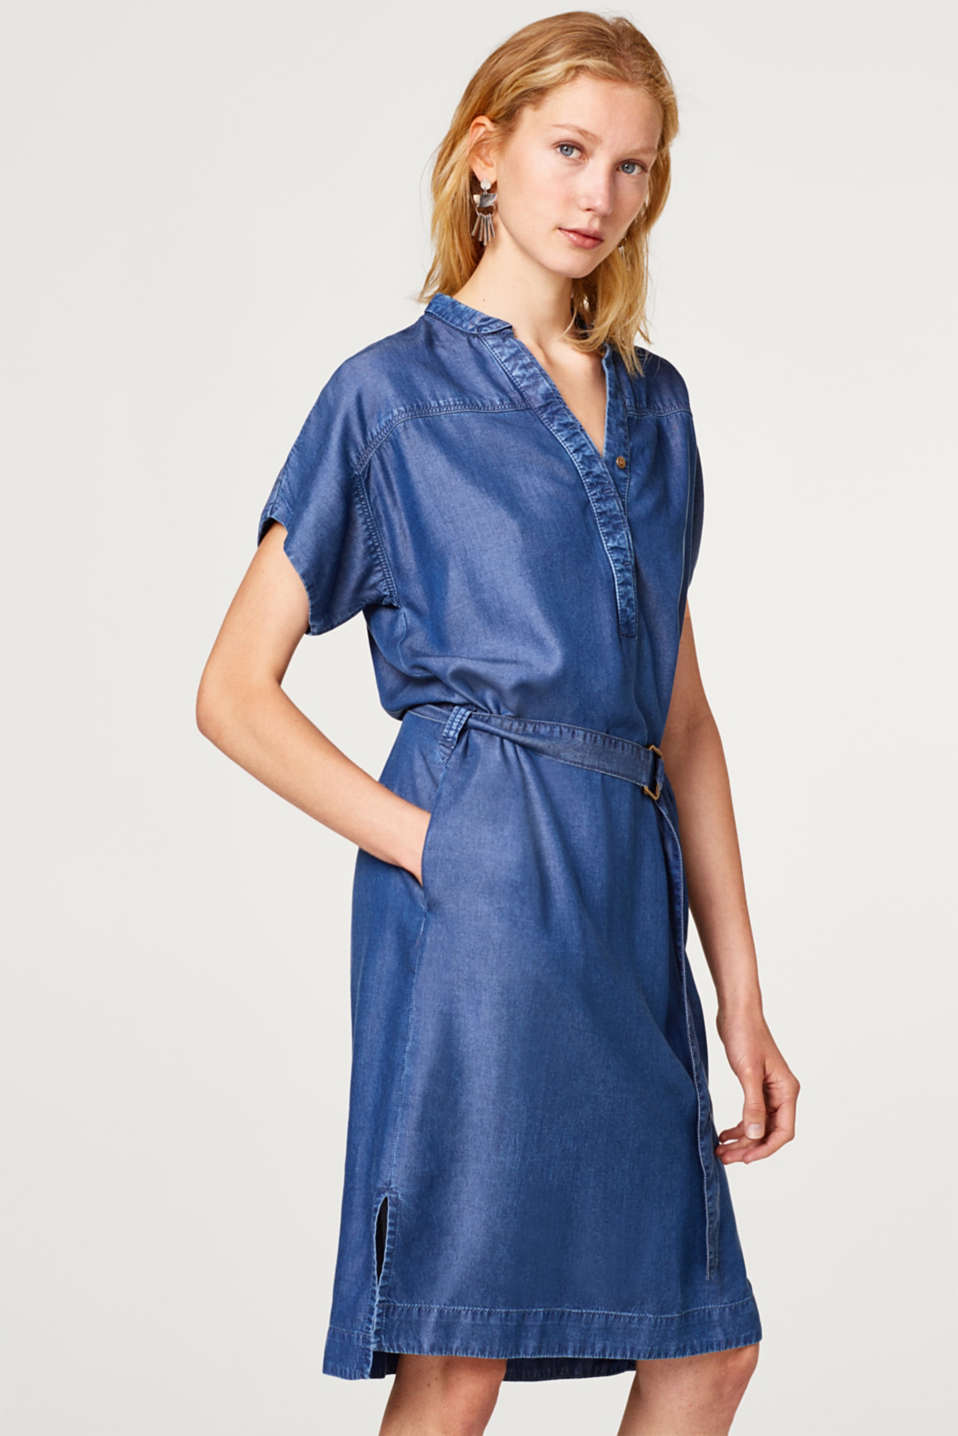 Esprit - Robe tunique en lyocell d'aspect denim